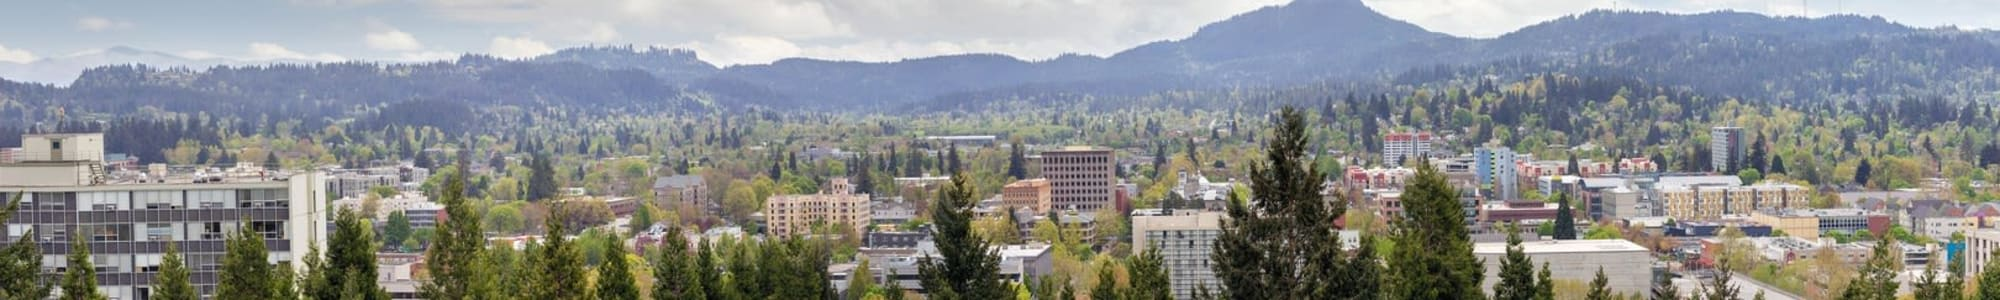 Join our team | Evergreen Senior Living in Eugene, Oregon